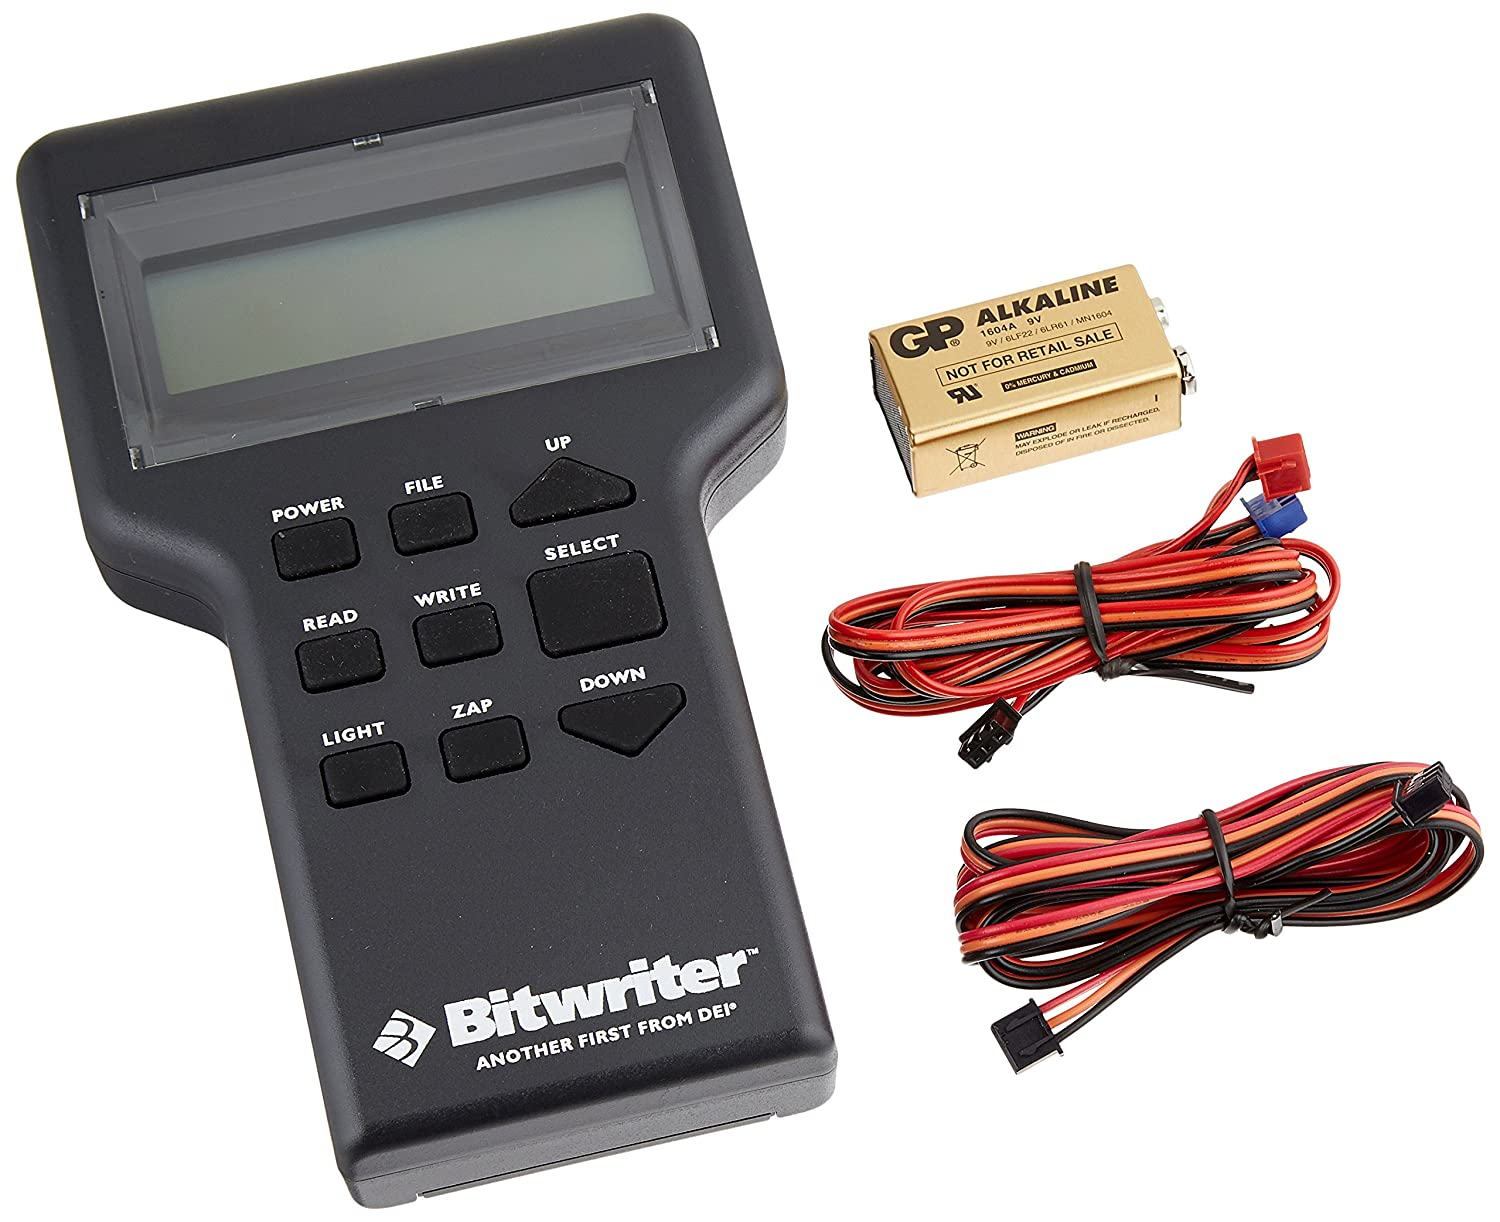 Directed Electronics 998t Bitwriter Programmer Automotive Viper Alarms 791xv Car Remote Controlviper